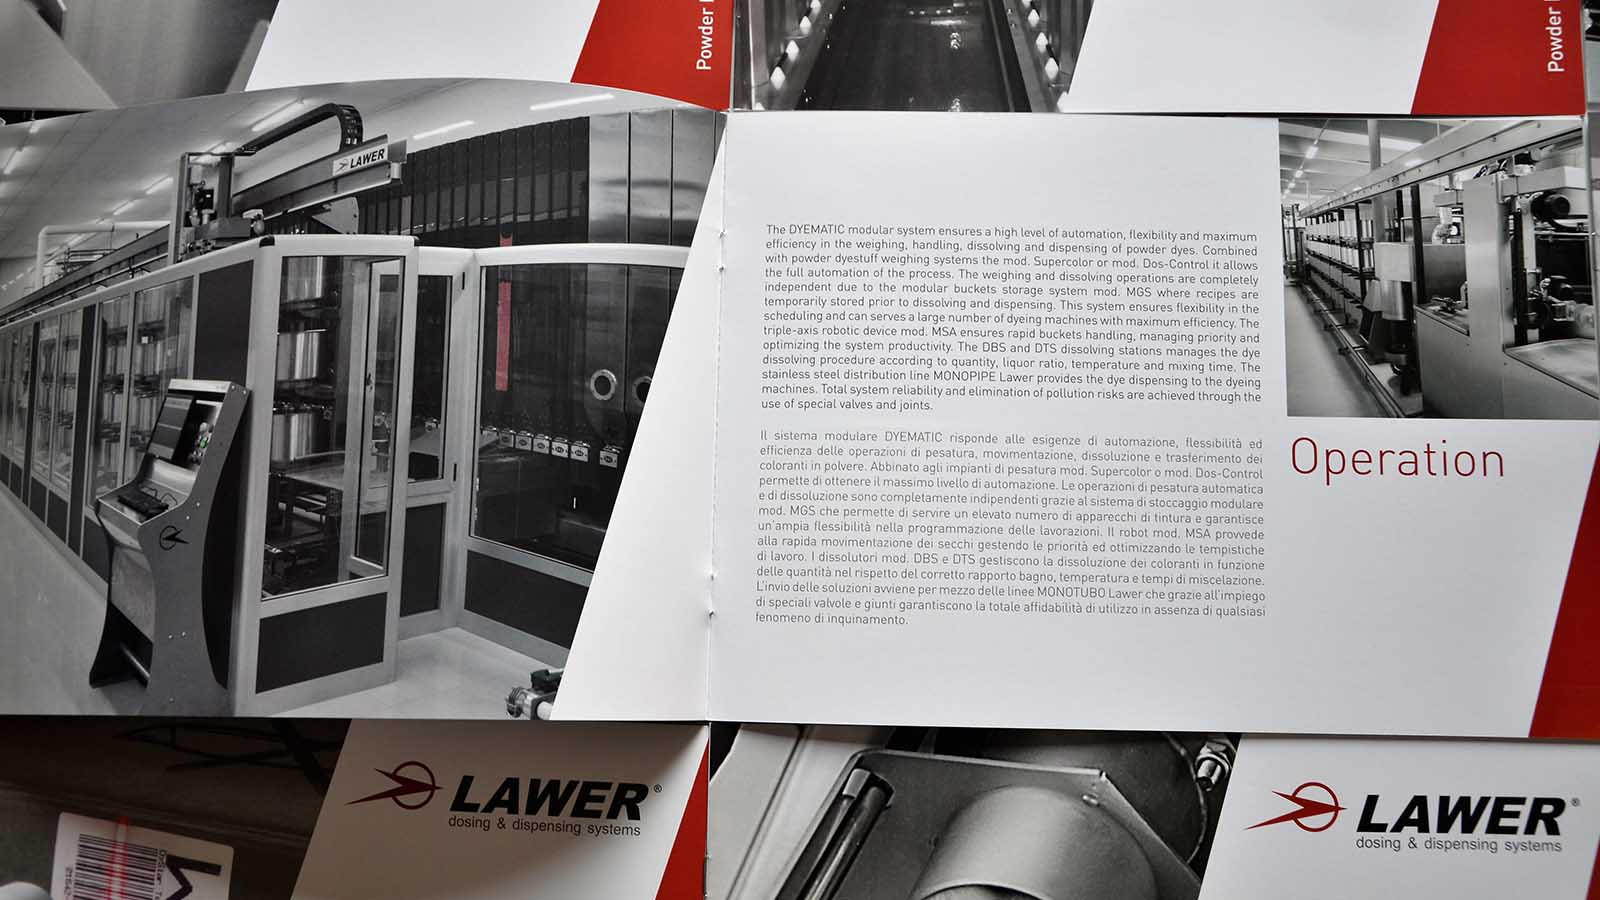 restyling-immagine-coordinata-lawer-2017-interno-brochure